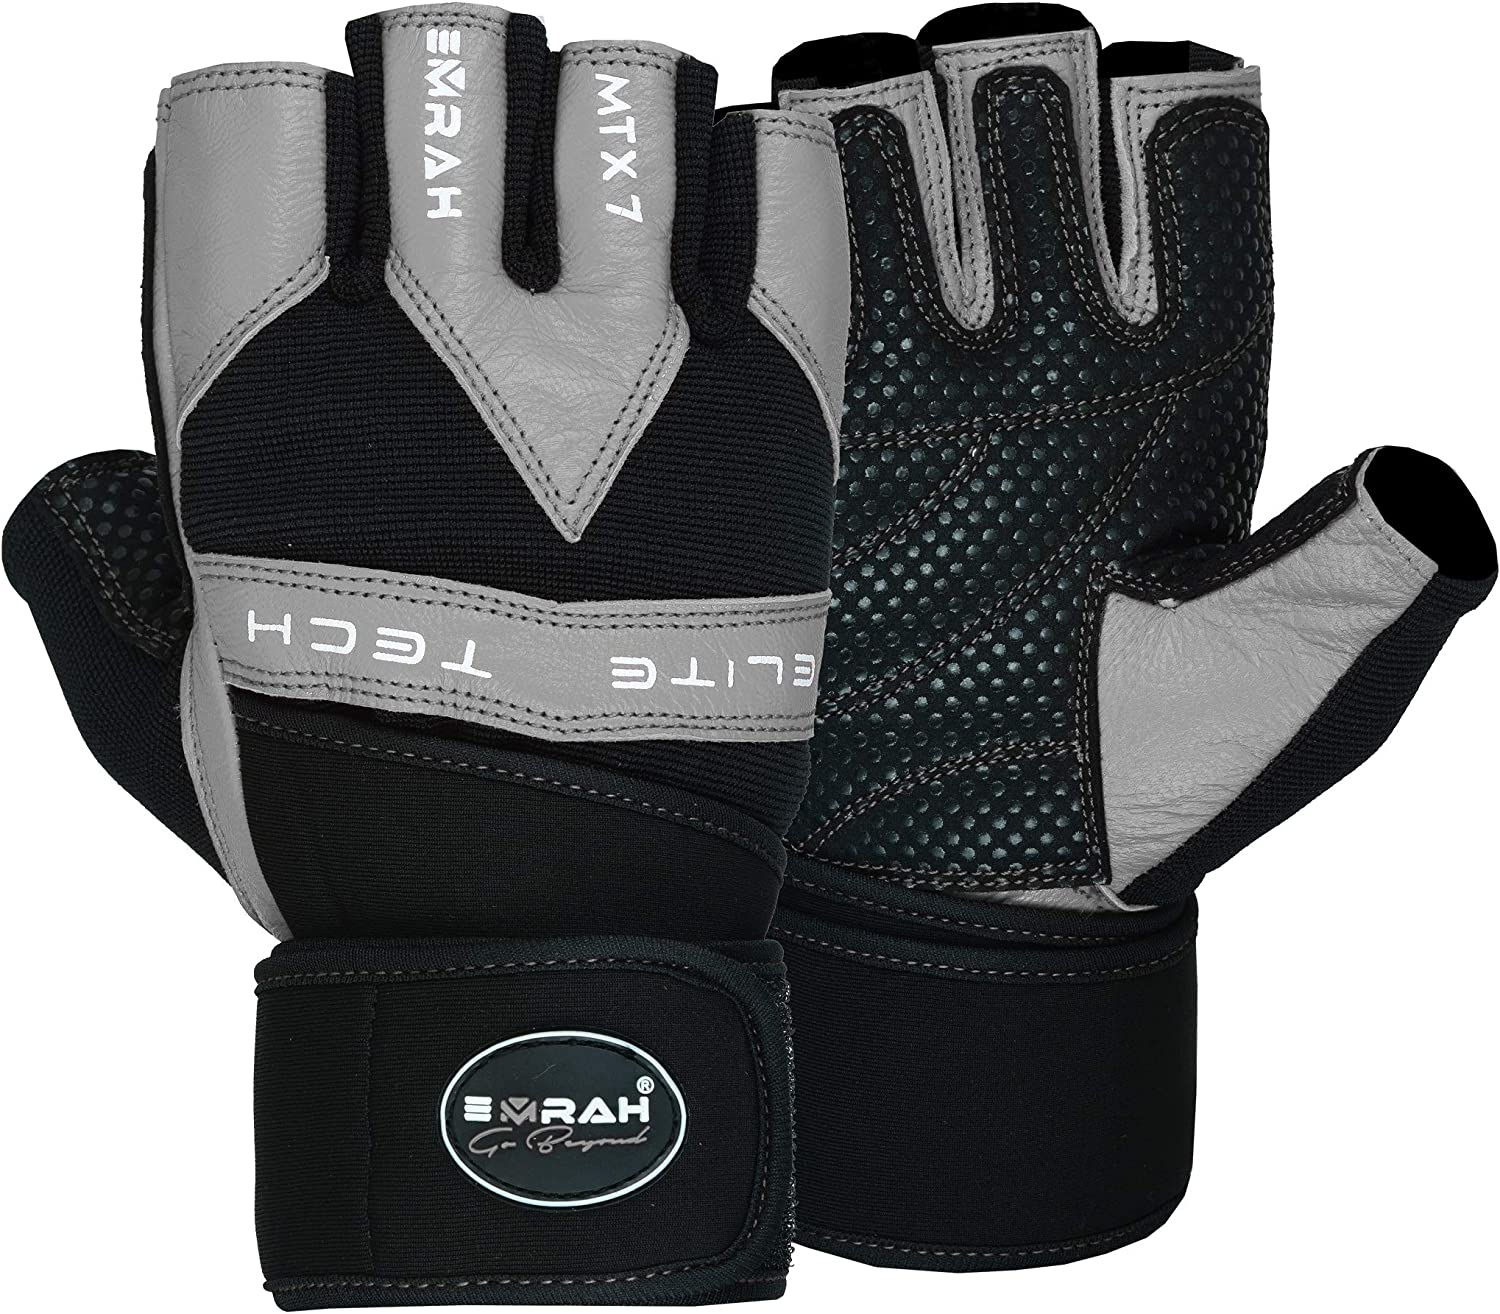 EMRAH Weight Lifting Gloves Training Fitness Exercise Gym Workout